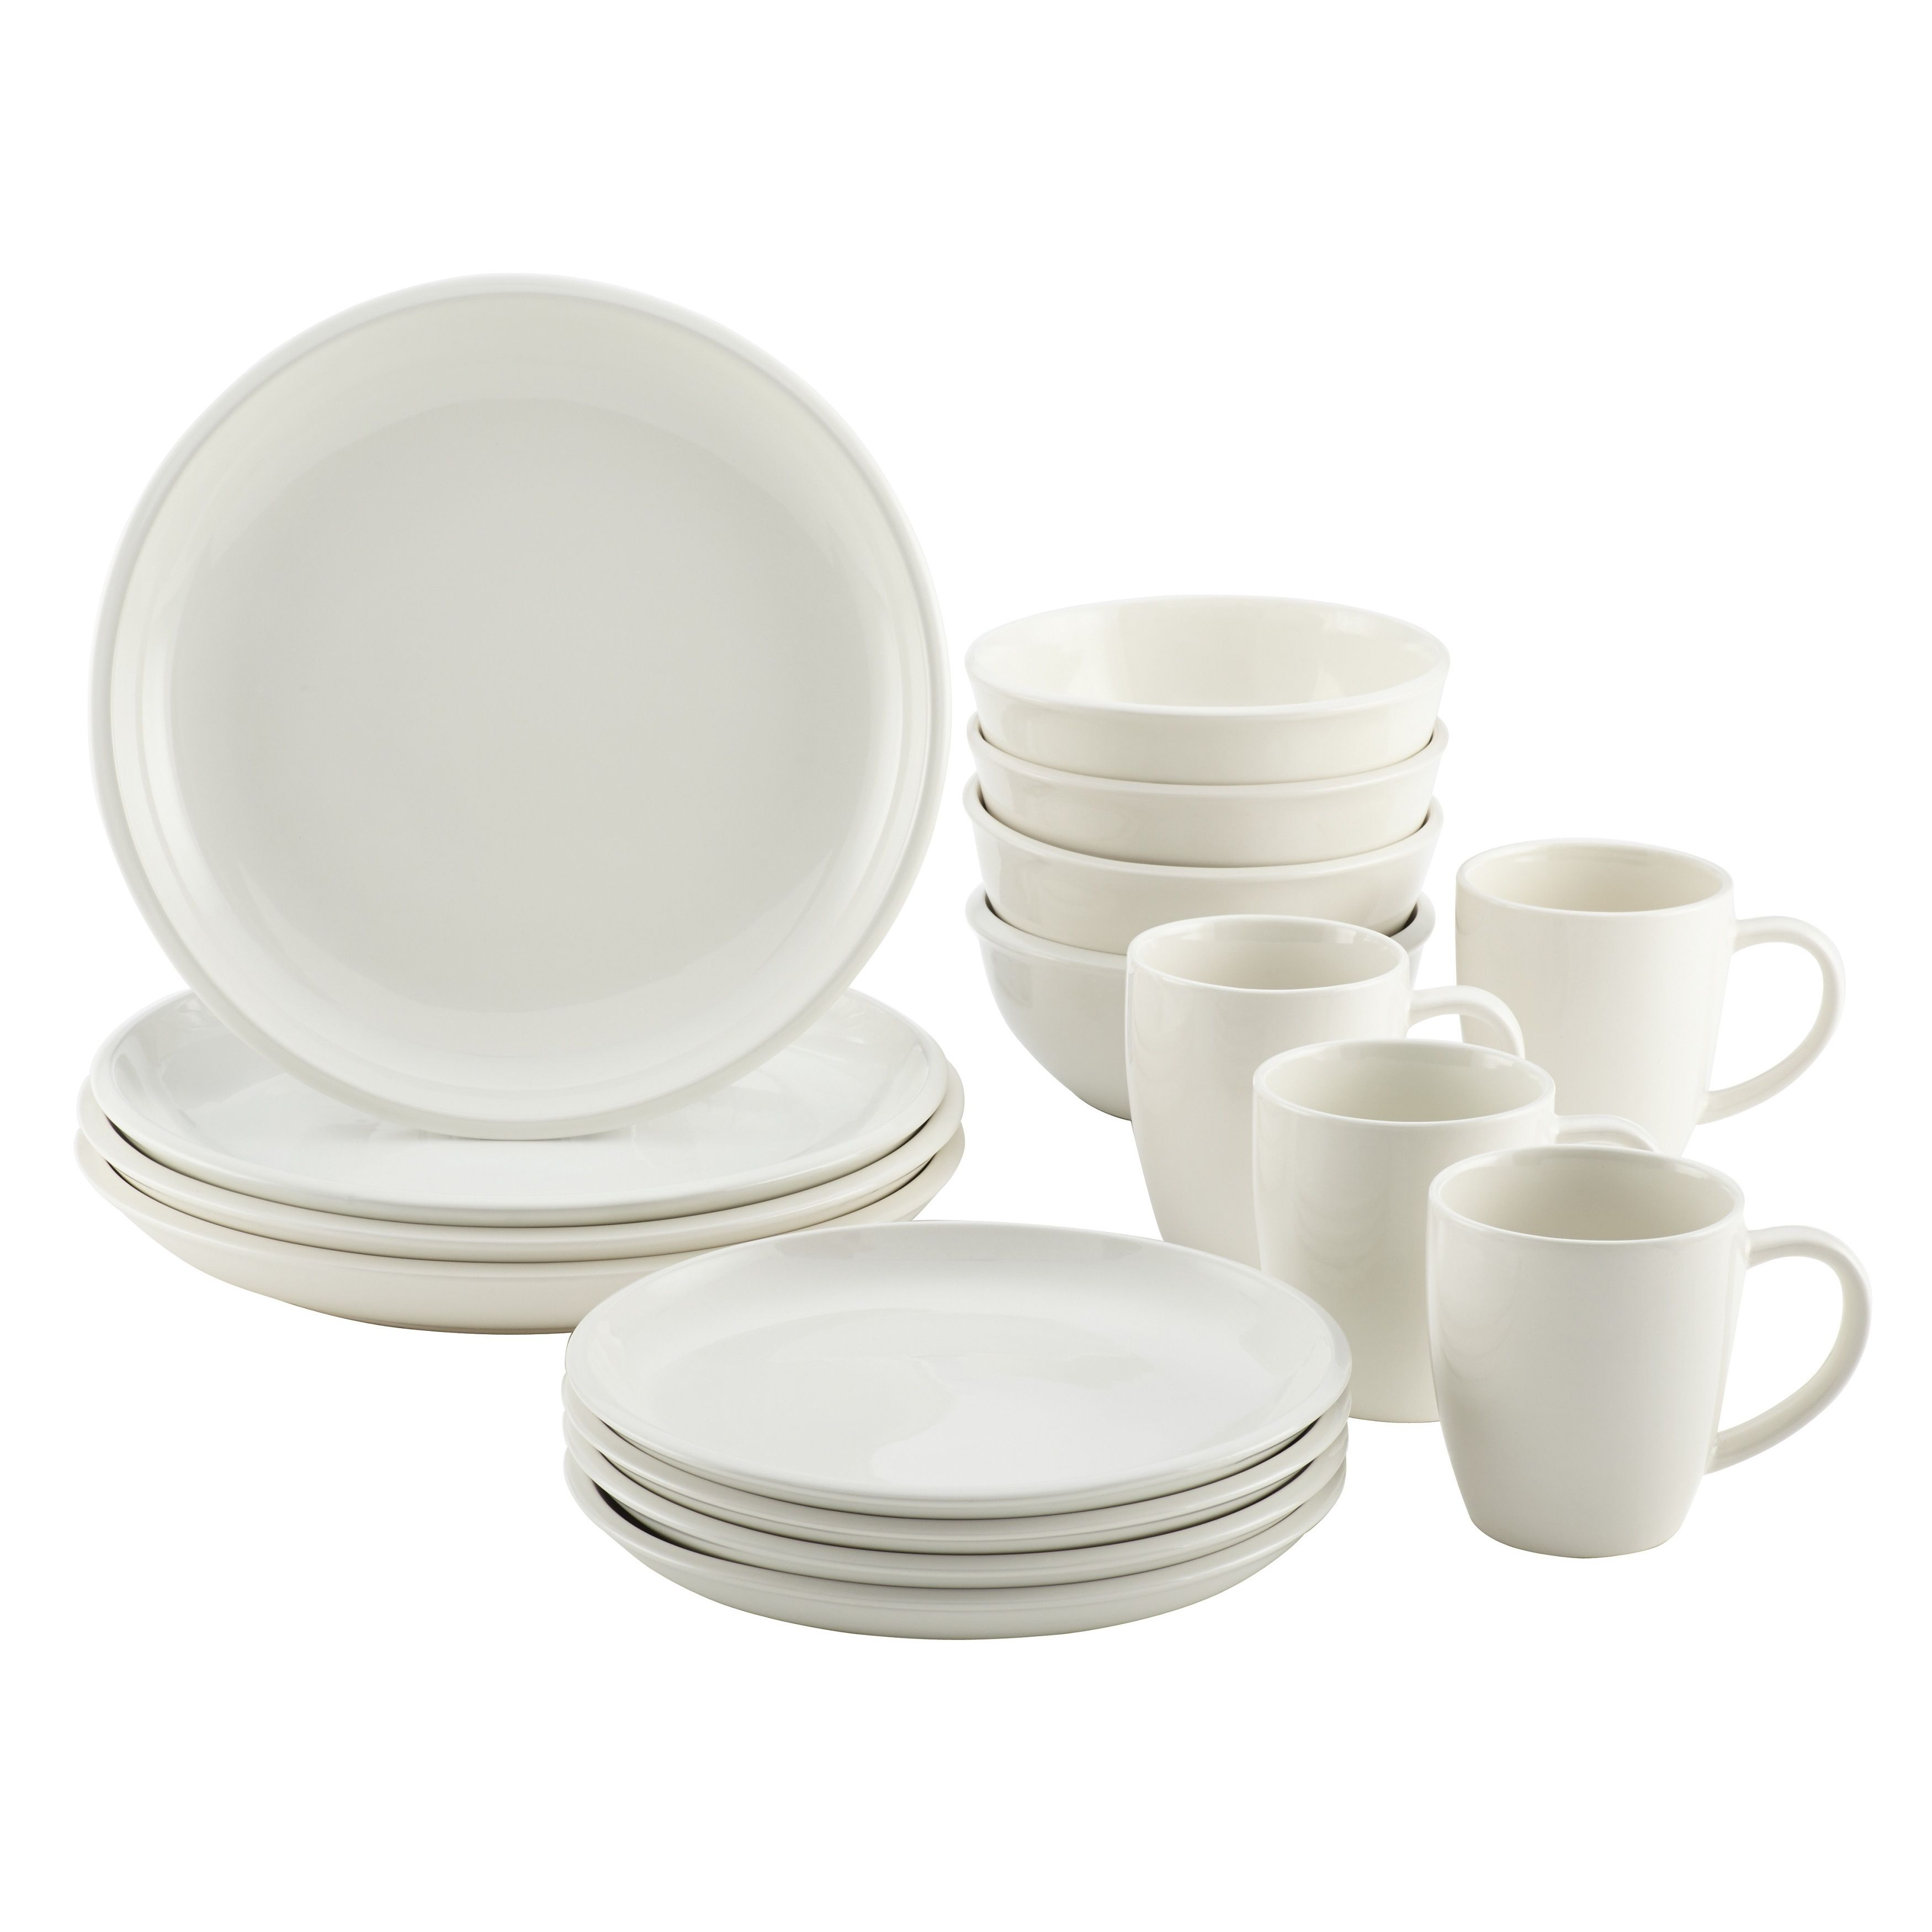 This dinnerware set comes in a variety of bold two-tone hues that add  sc 1 st  Pinterest & This dinnerware set comes in a variety of bold two-tone hues that ...